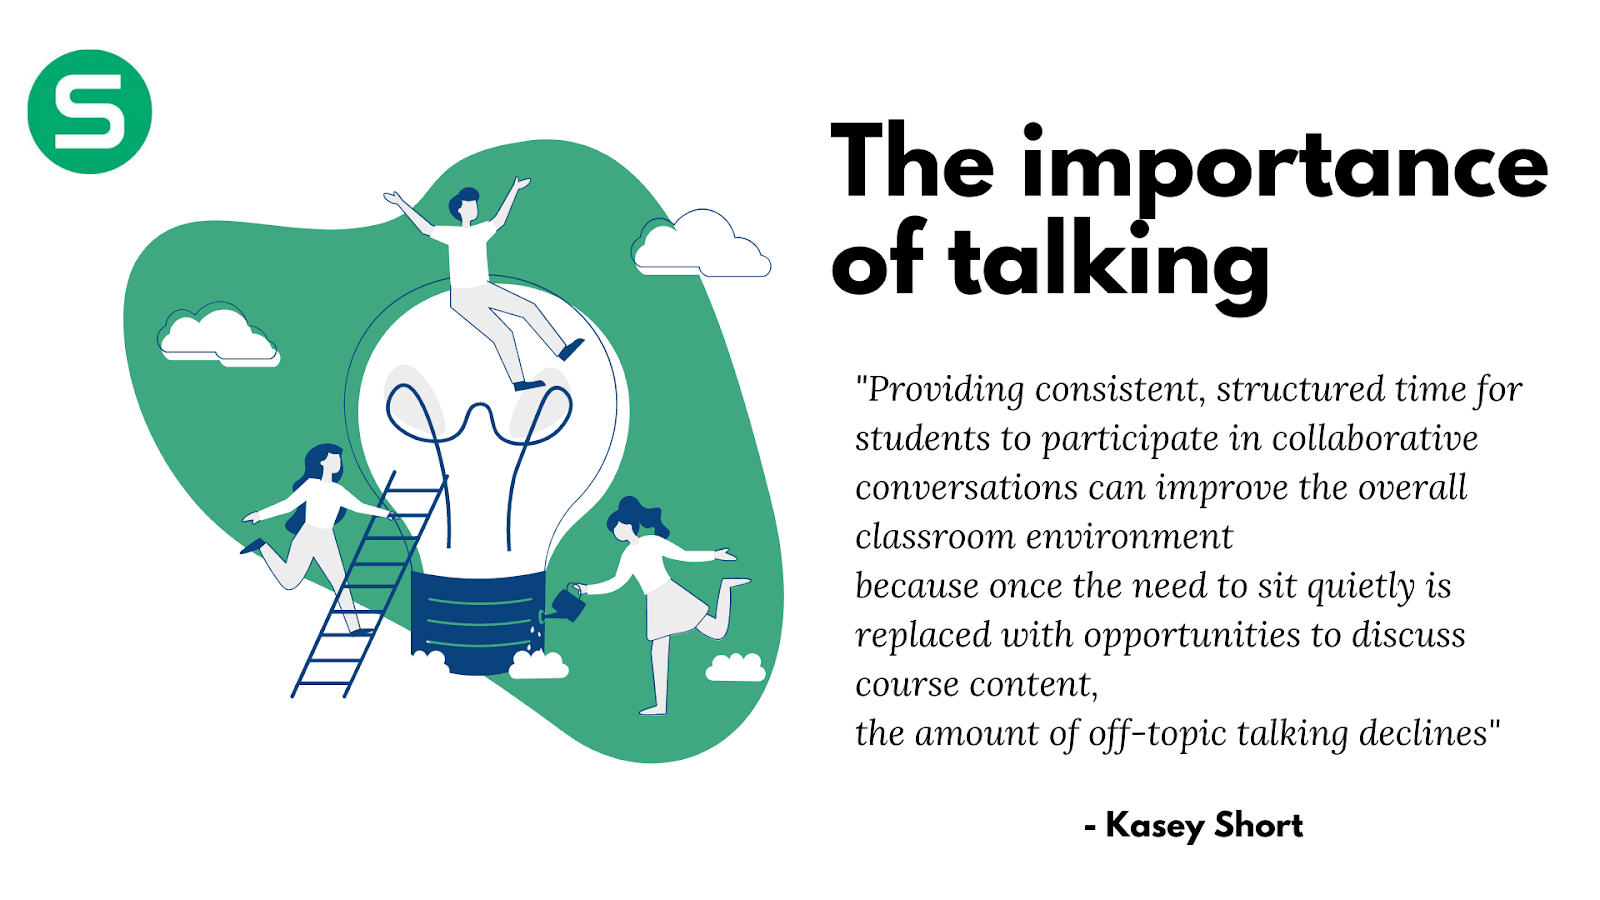 The importance of talking